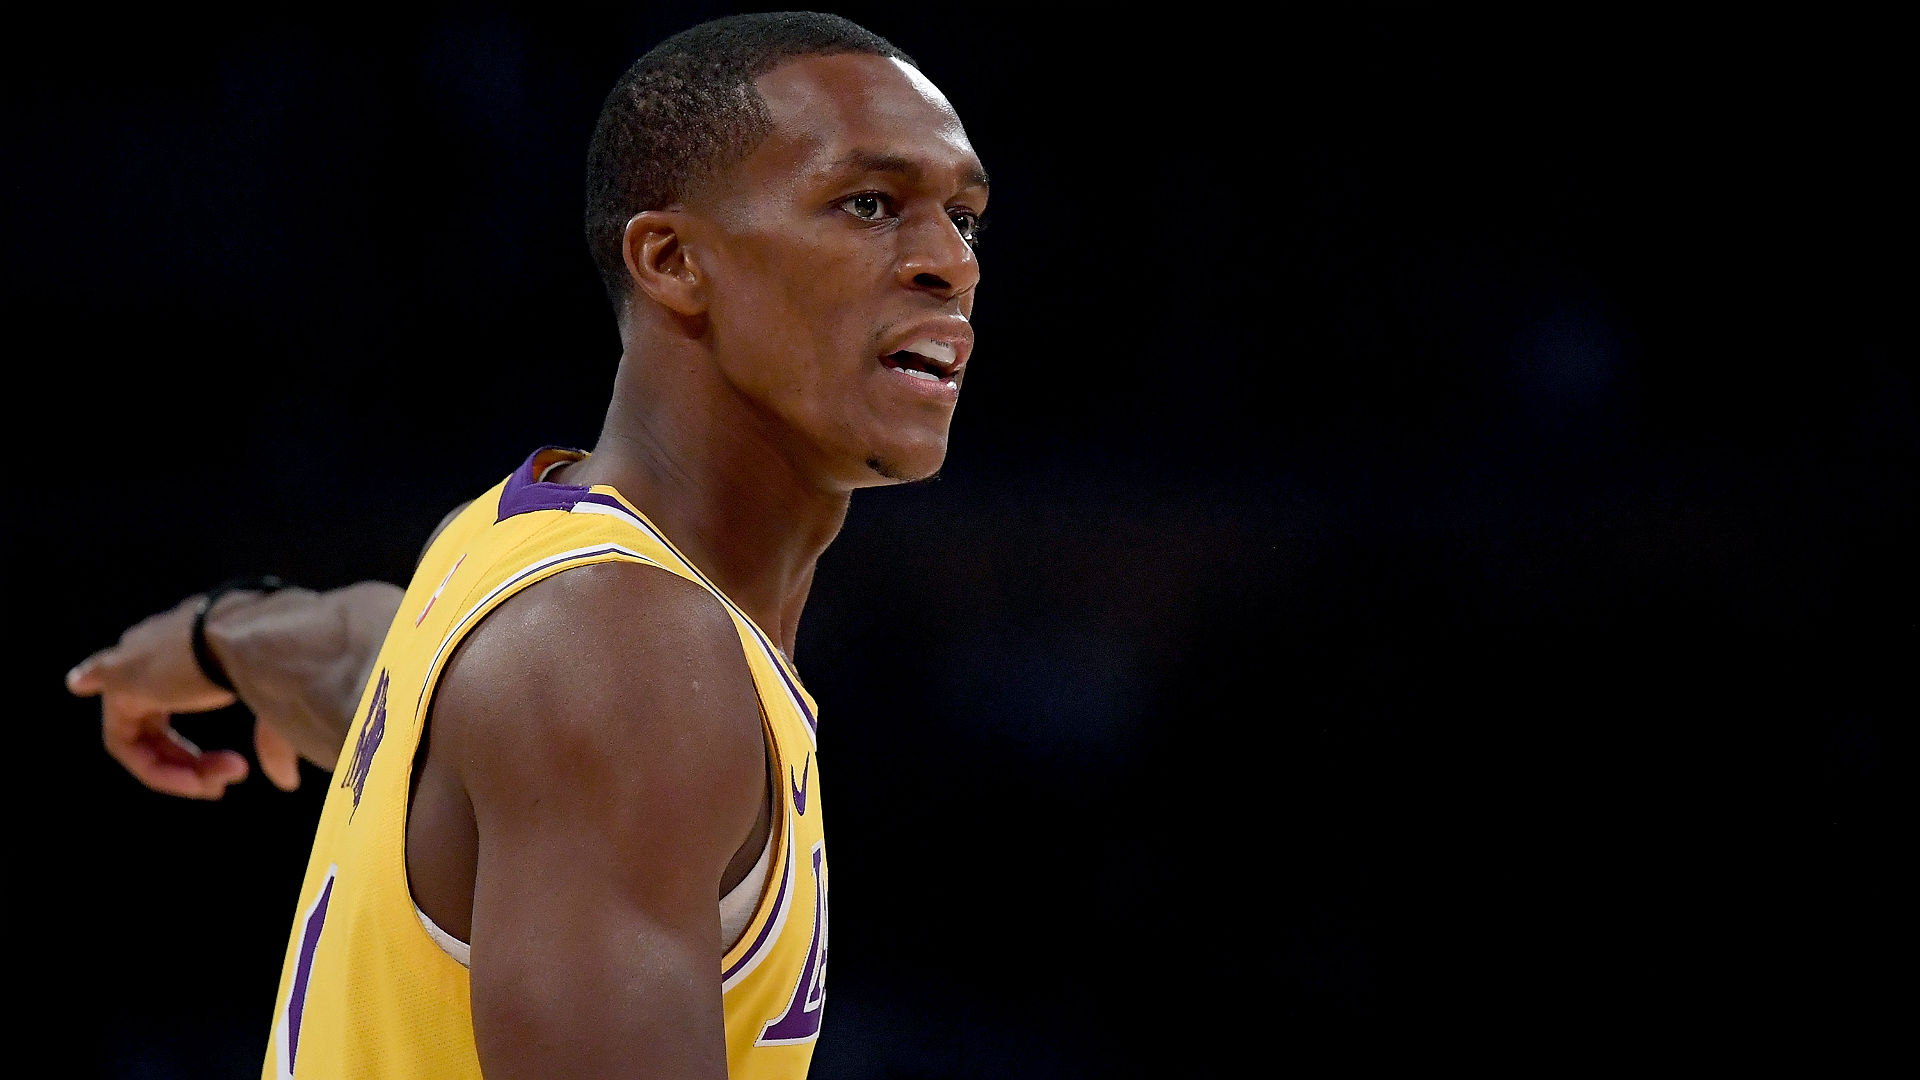 Rajon Rondo injury update: Lakers guard (finger) cleared for full-contact practices